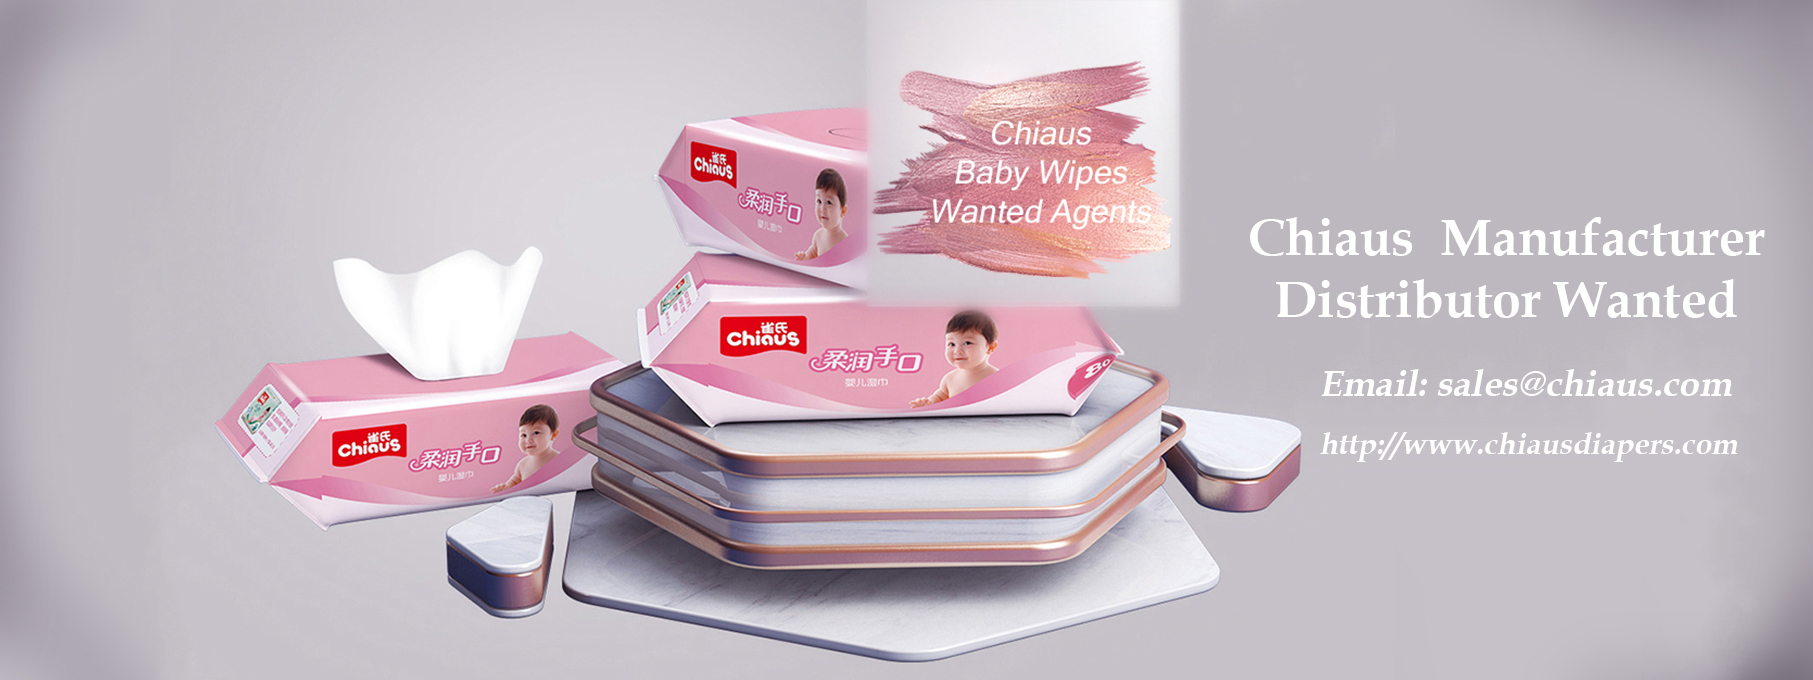 Chiaus Skin care high quality baby wet wipes manufacturer in China. high quality soft non-woven fabric, purified water, moisturizer.